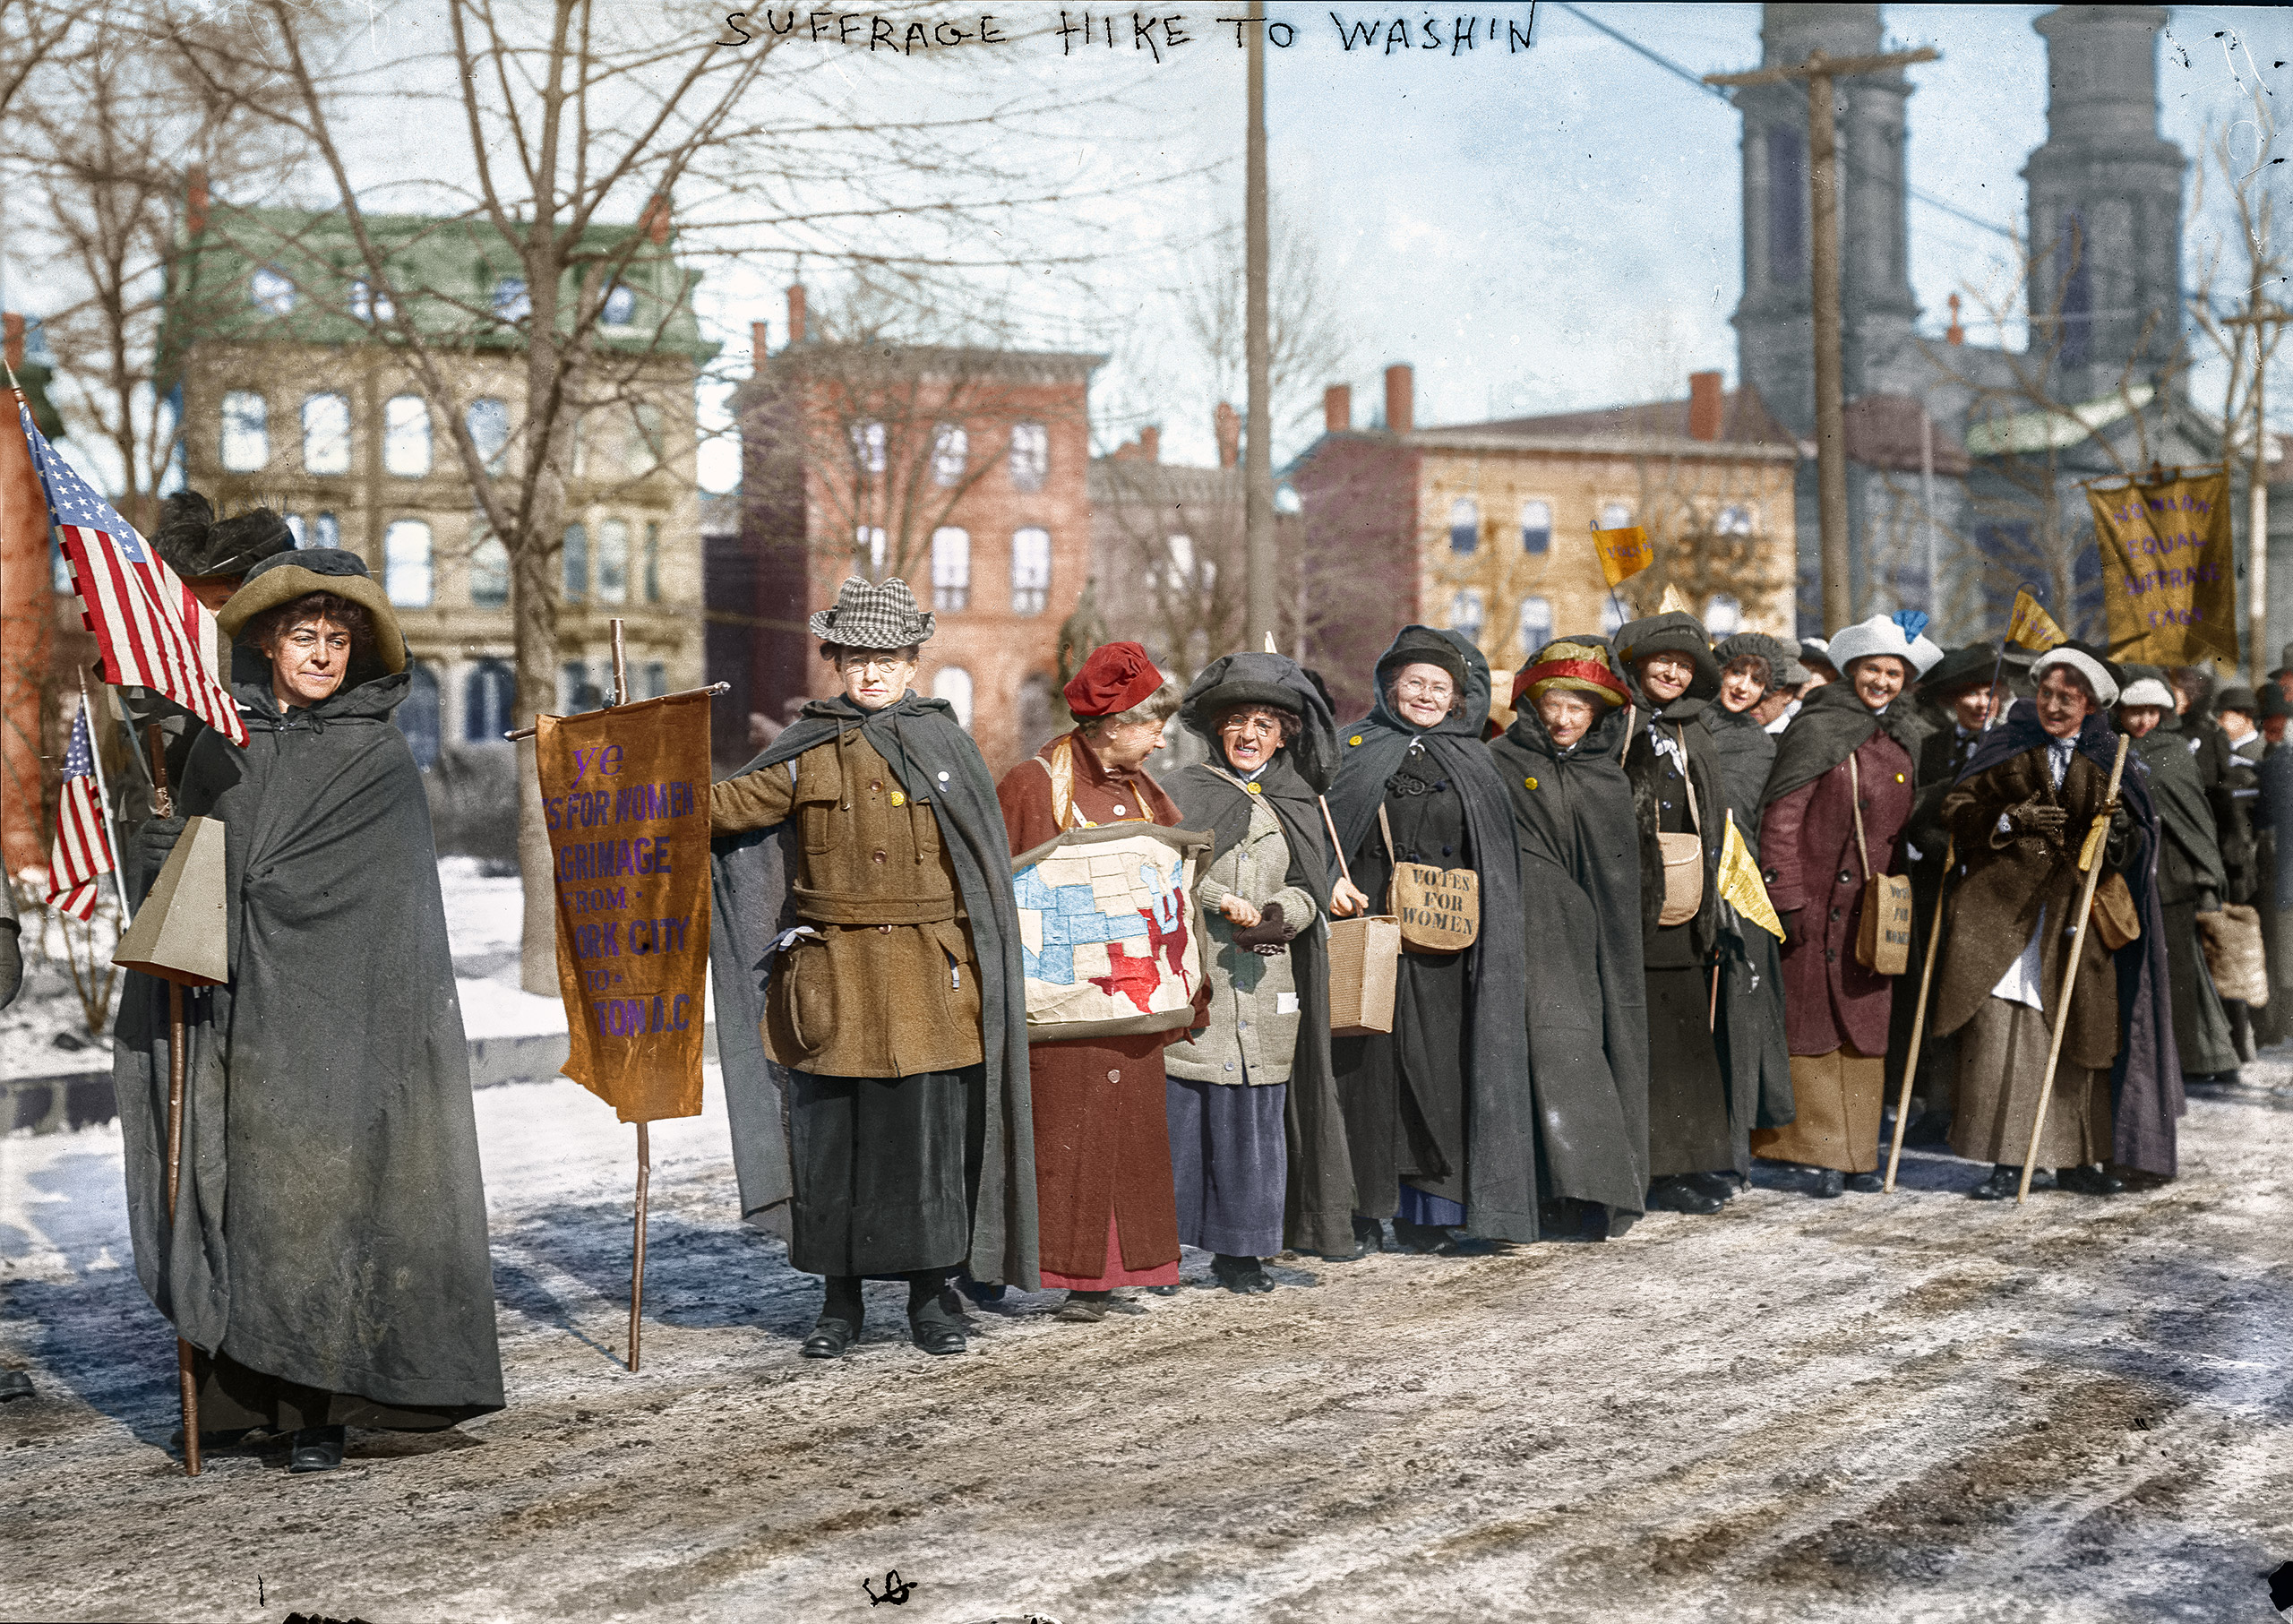 Suffrage hikers who took part in the suffrage hike from New York City to Washington, D.C. which joined the Mar. 3, 1913 National American Woman Suffrage Association parade.